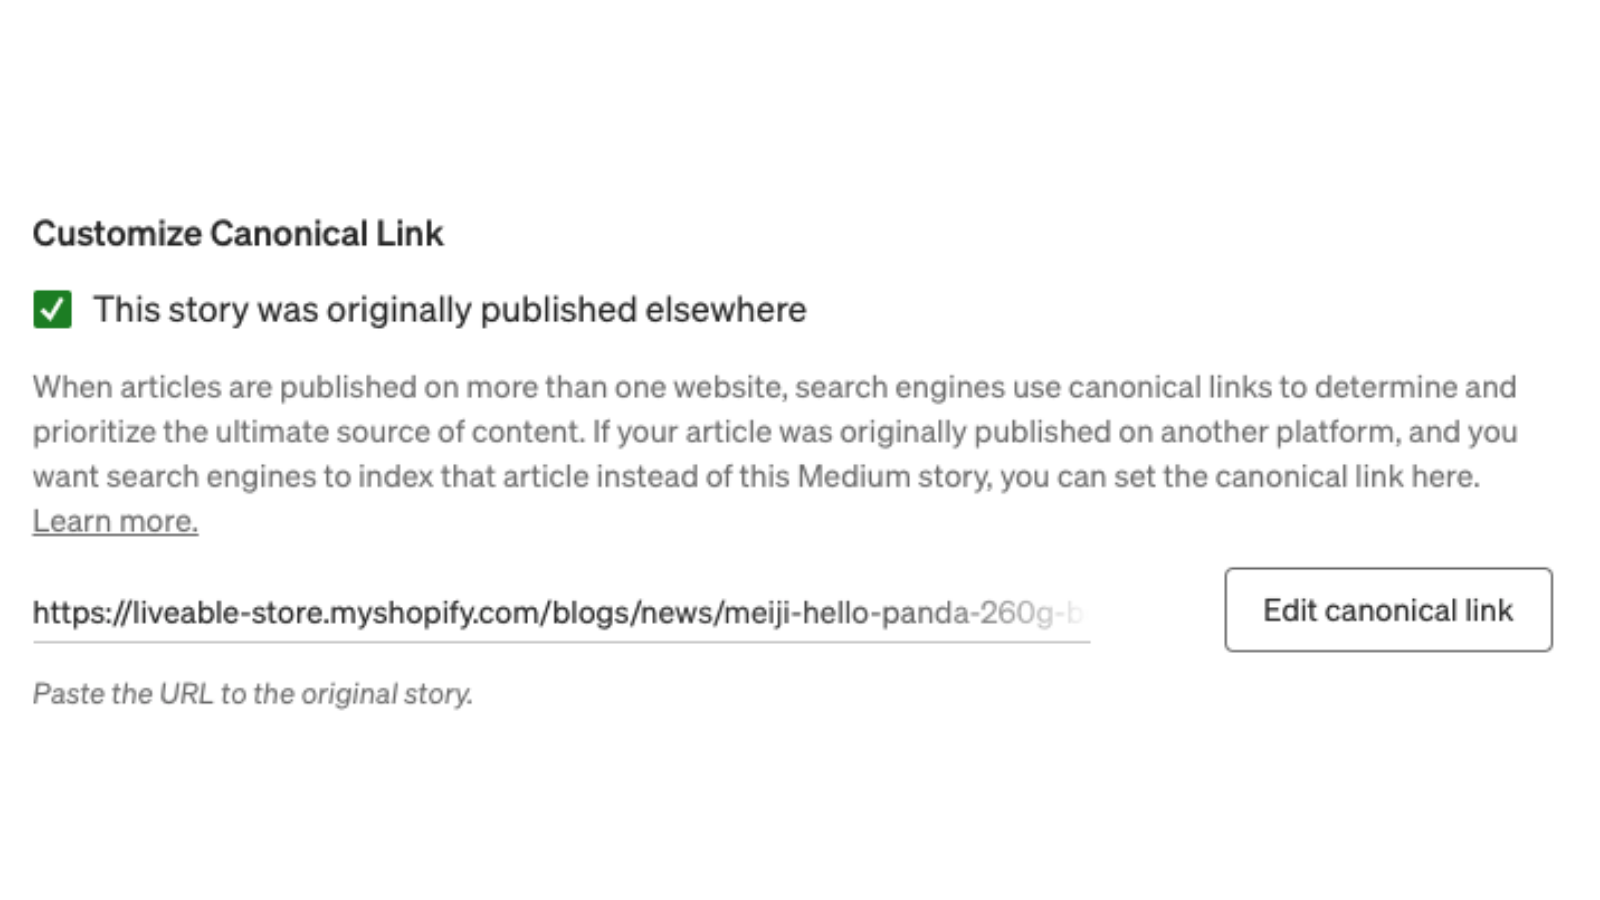 Canonical URL automatically entered in Medium. Improves SEO